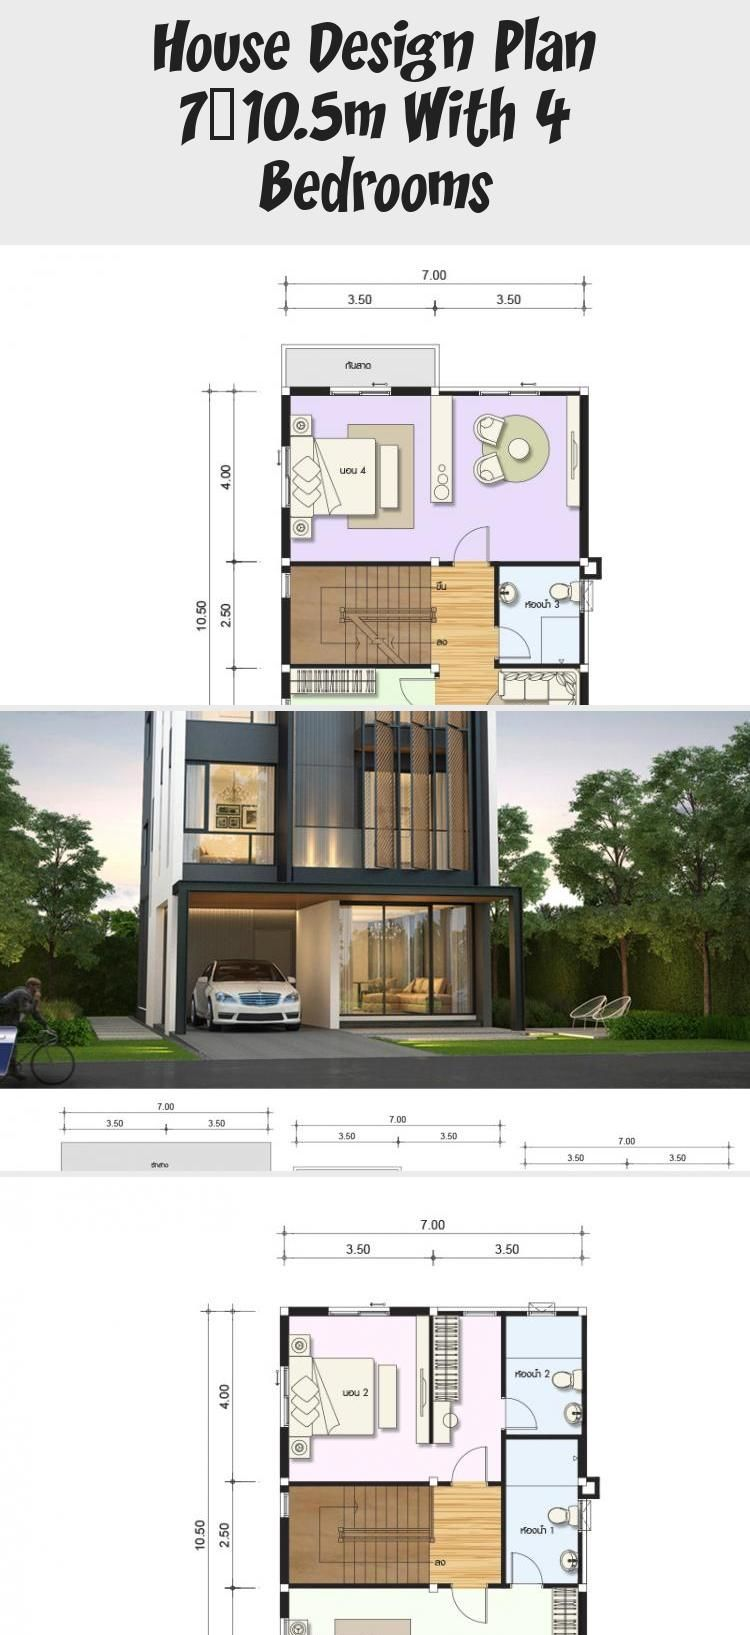 House Design Plan 7x10 5m With 4 Bedrooms Home Design With Plansearch Housedesignaffordable Class In 2020 Home Design Plans Small House Design Classic House Design